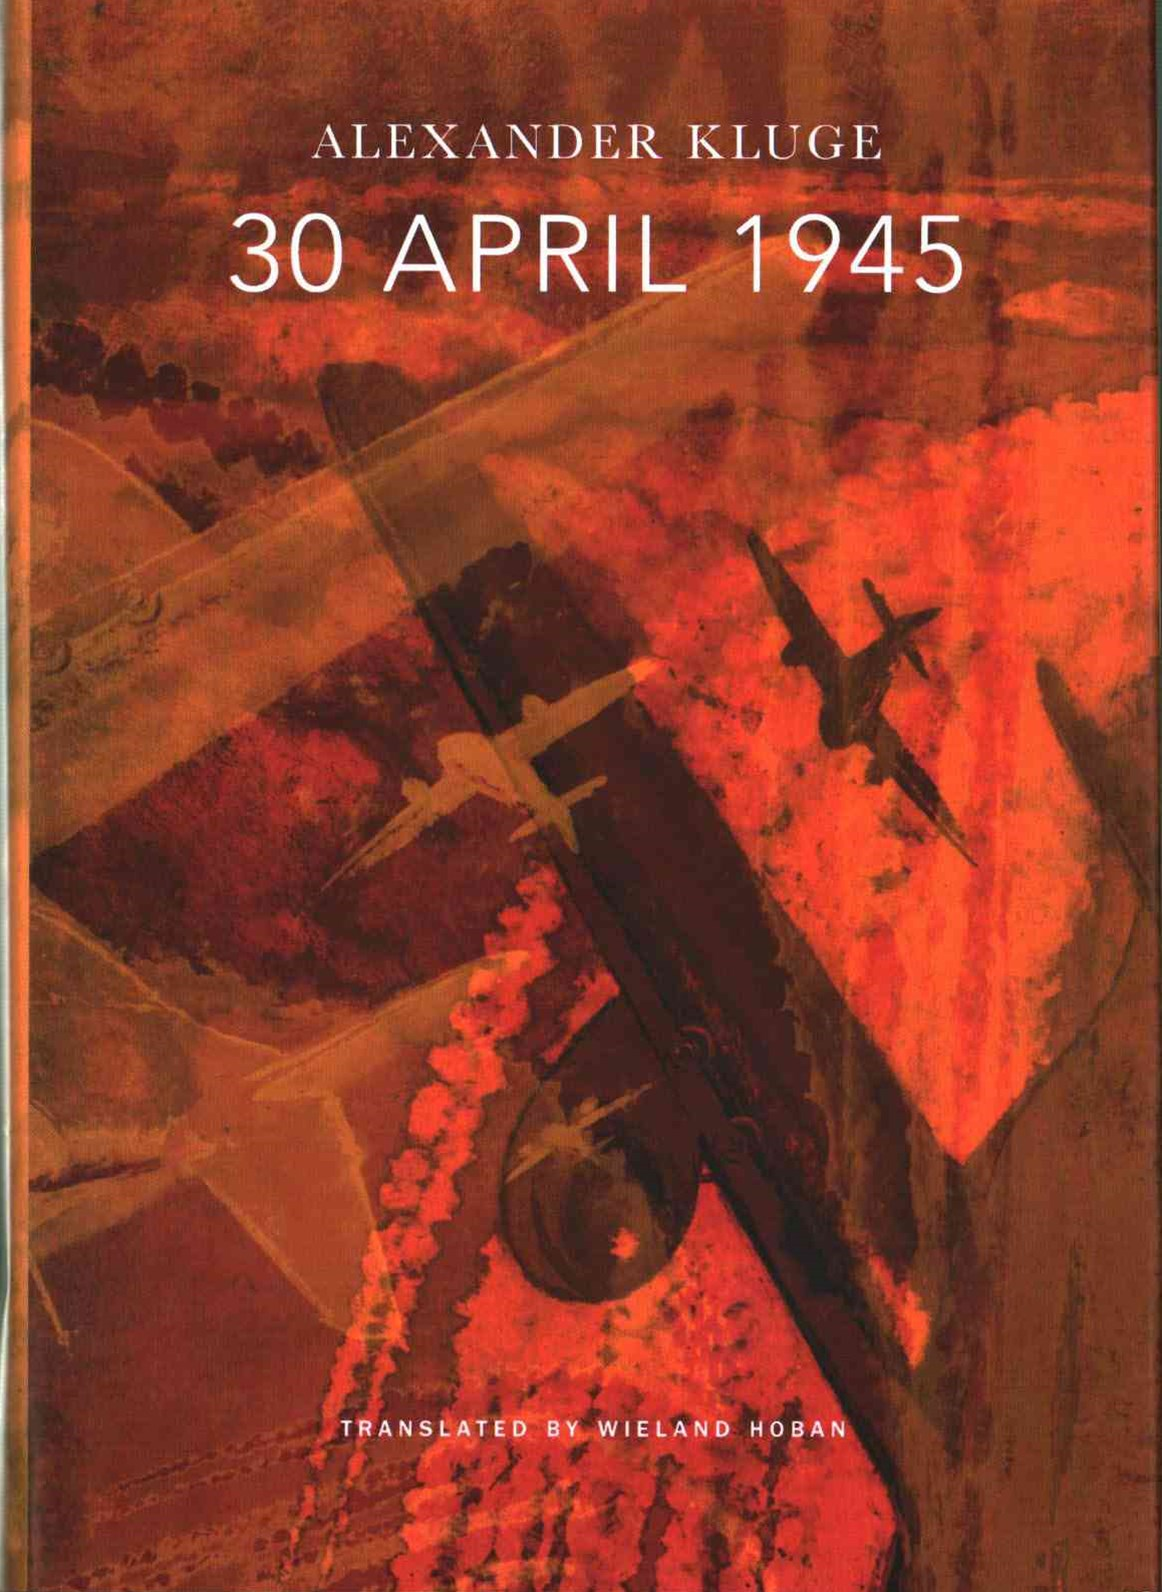 The 30th of April 1945